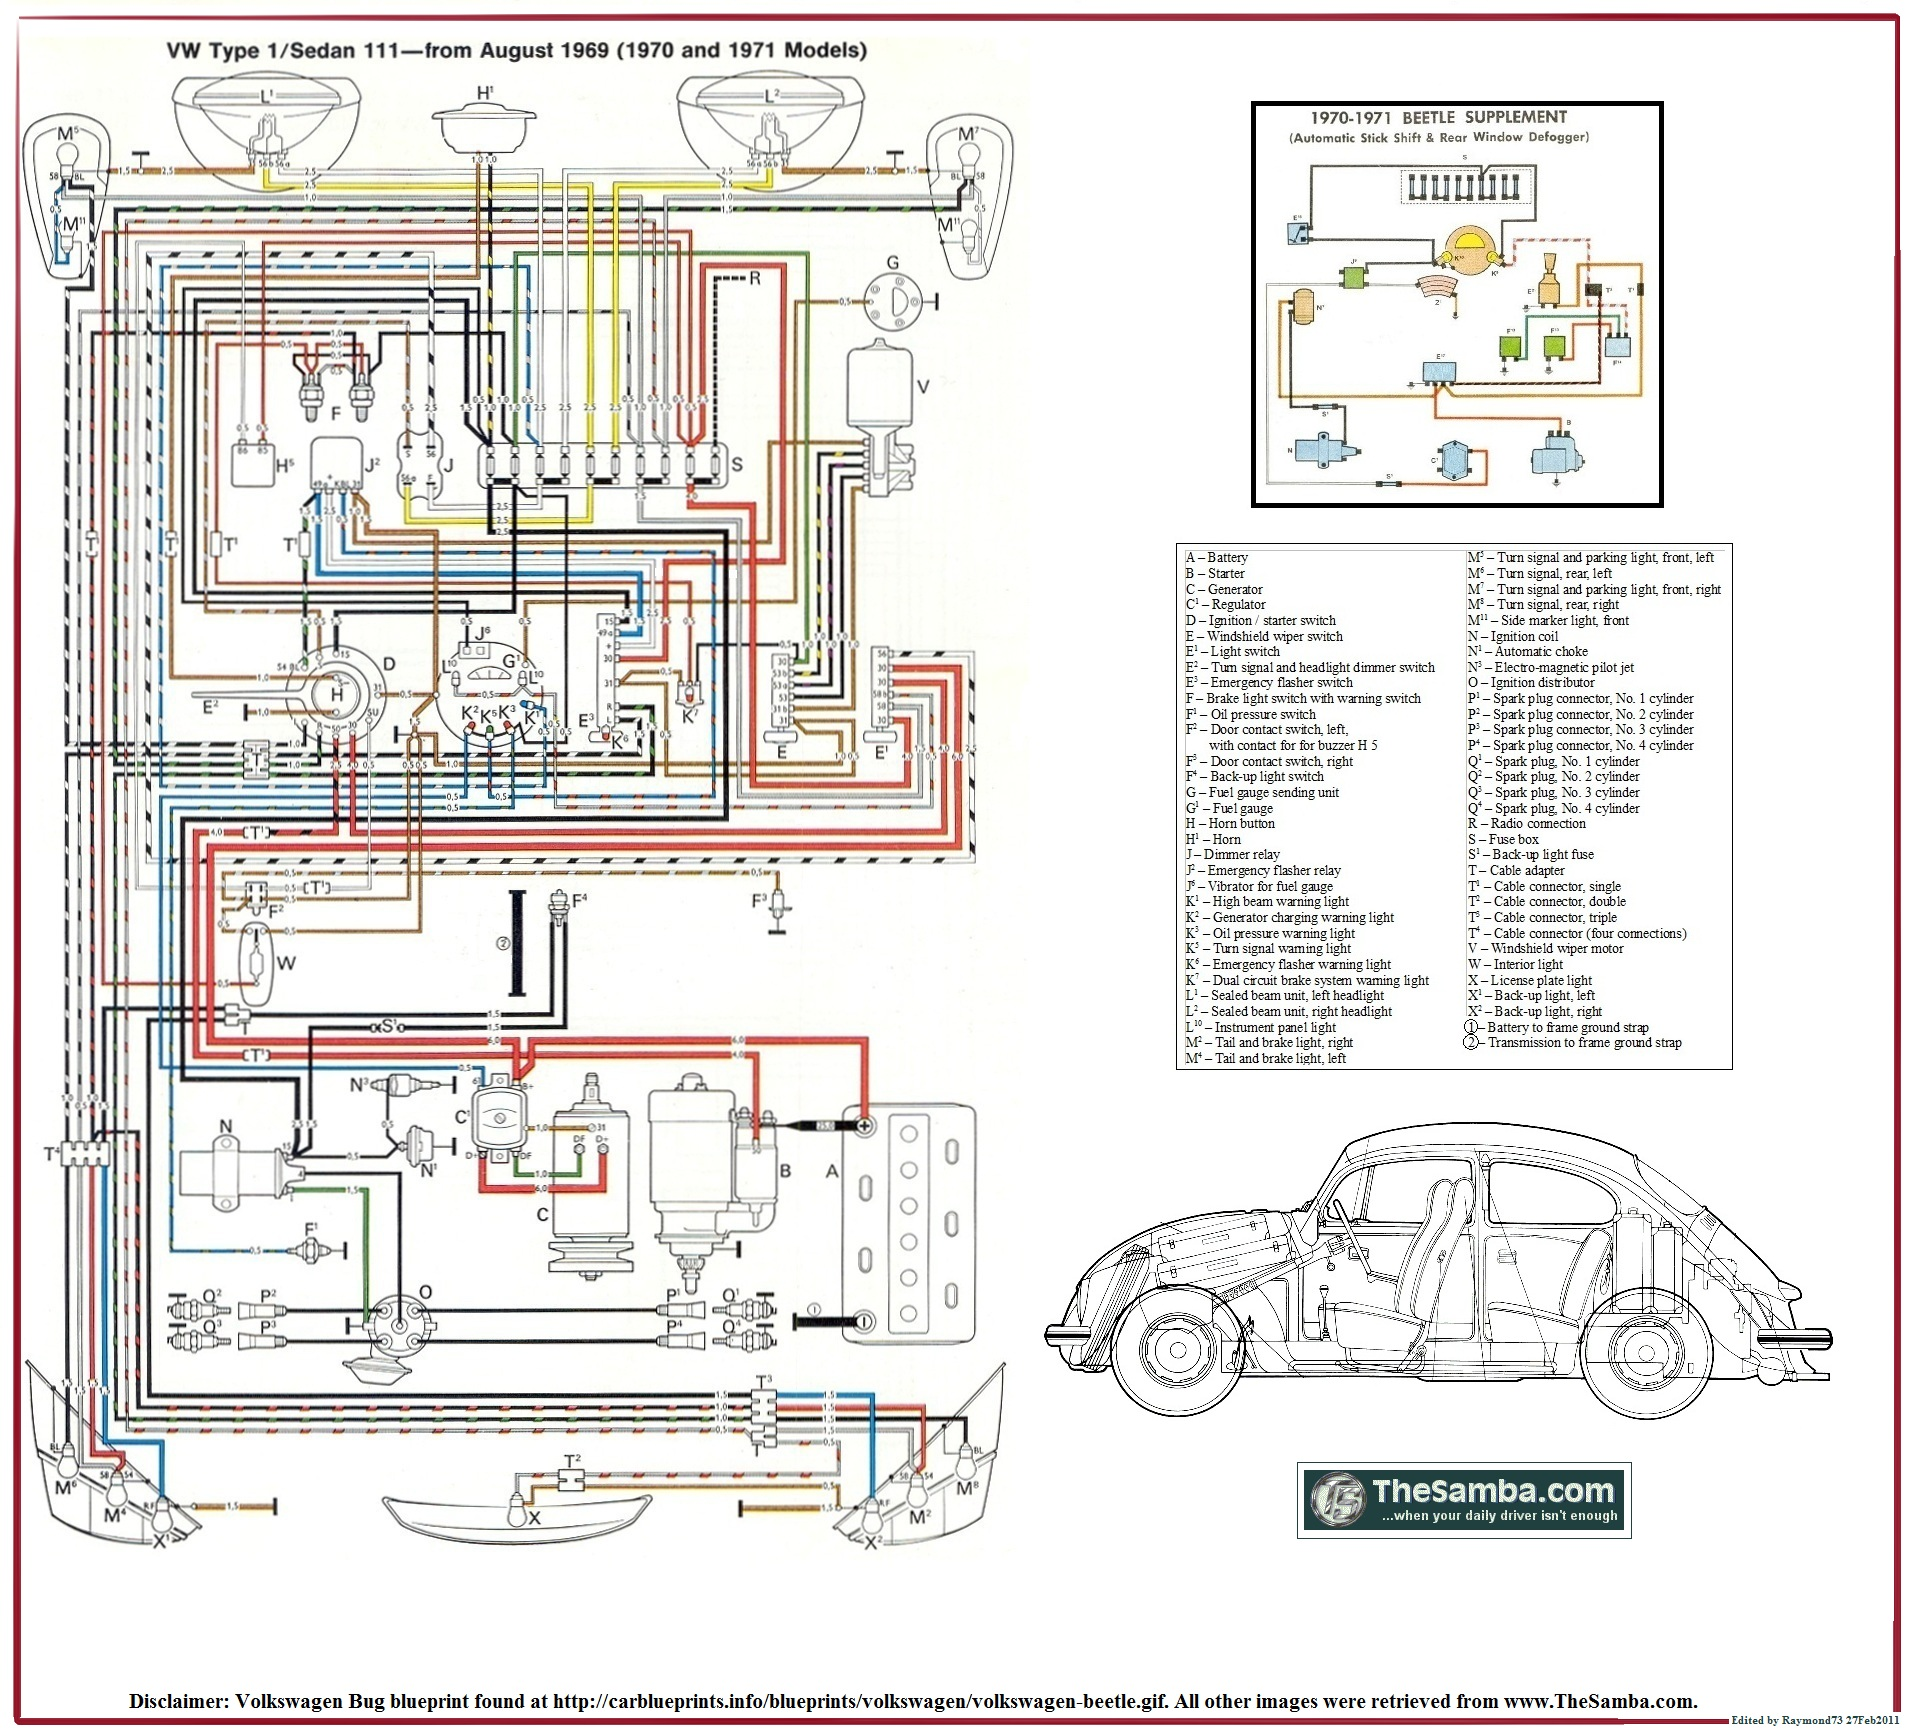 1970_VW_Type_1_Poster thesamba com beetle late model super 1968 up view topic vw bug wiring diagram at webbmarketing.co